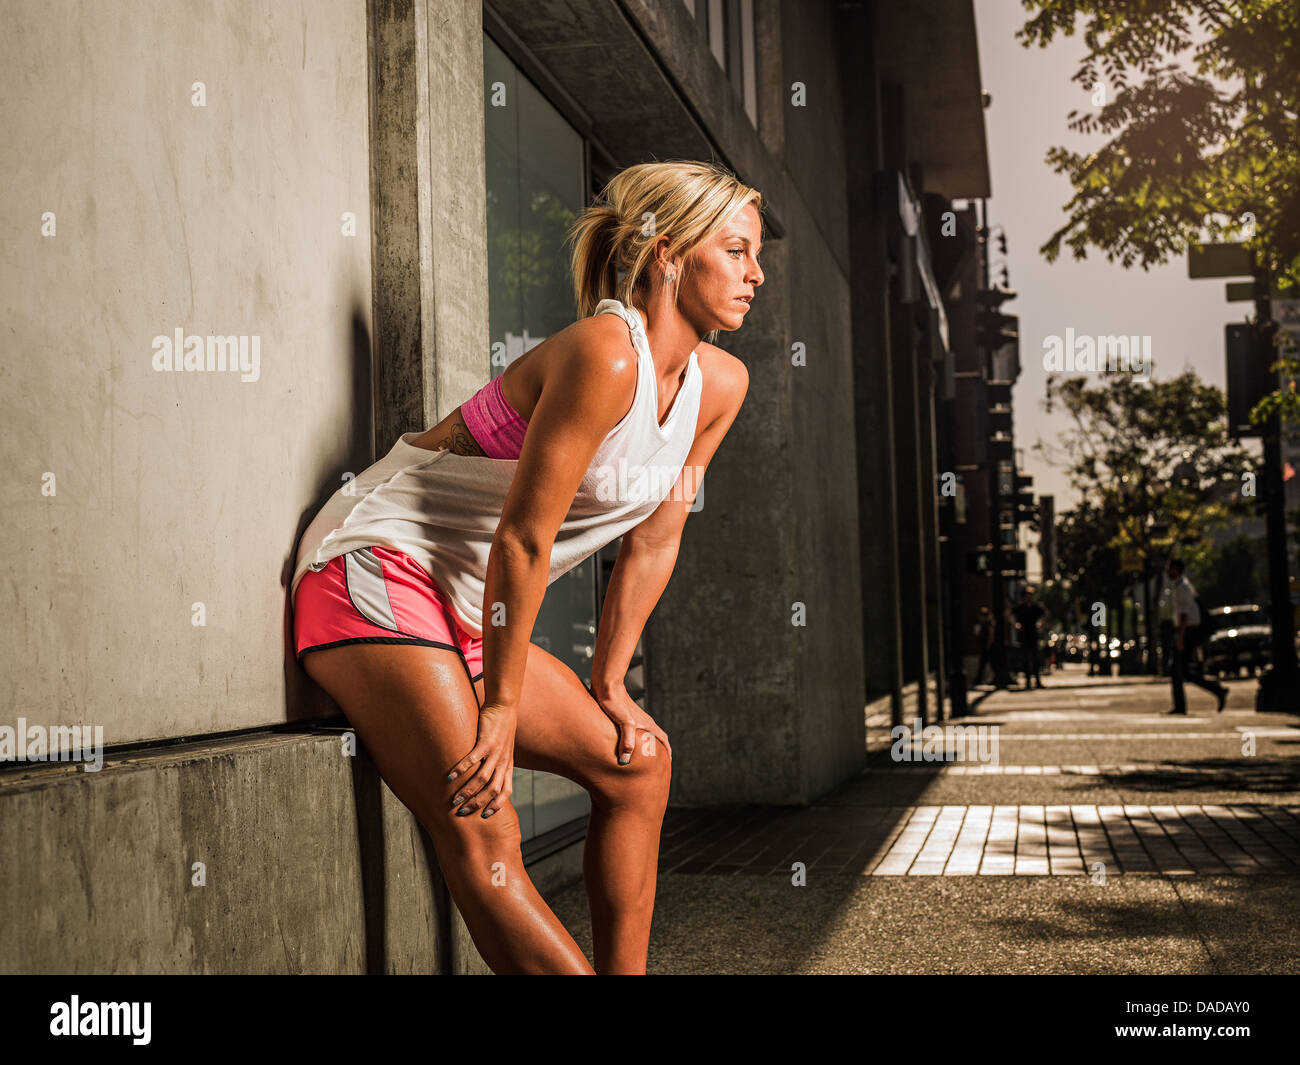 Female runner stopping to catch her breath - Stock Image